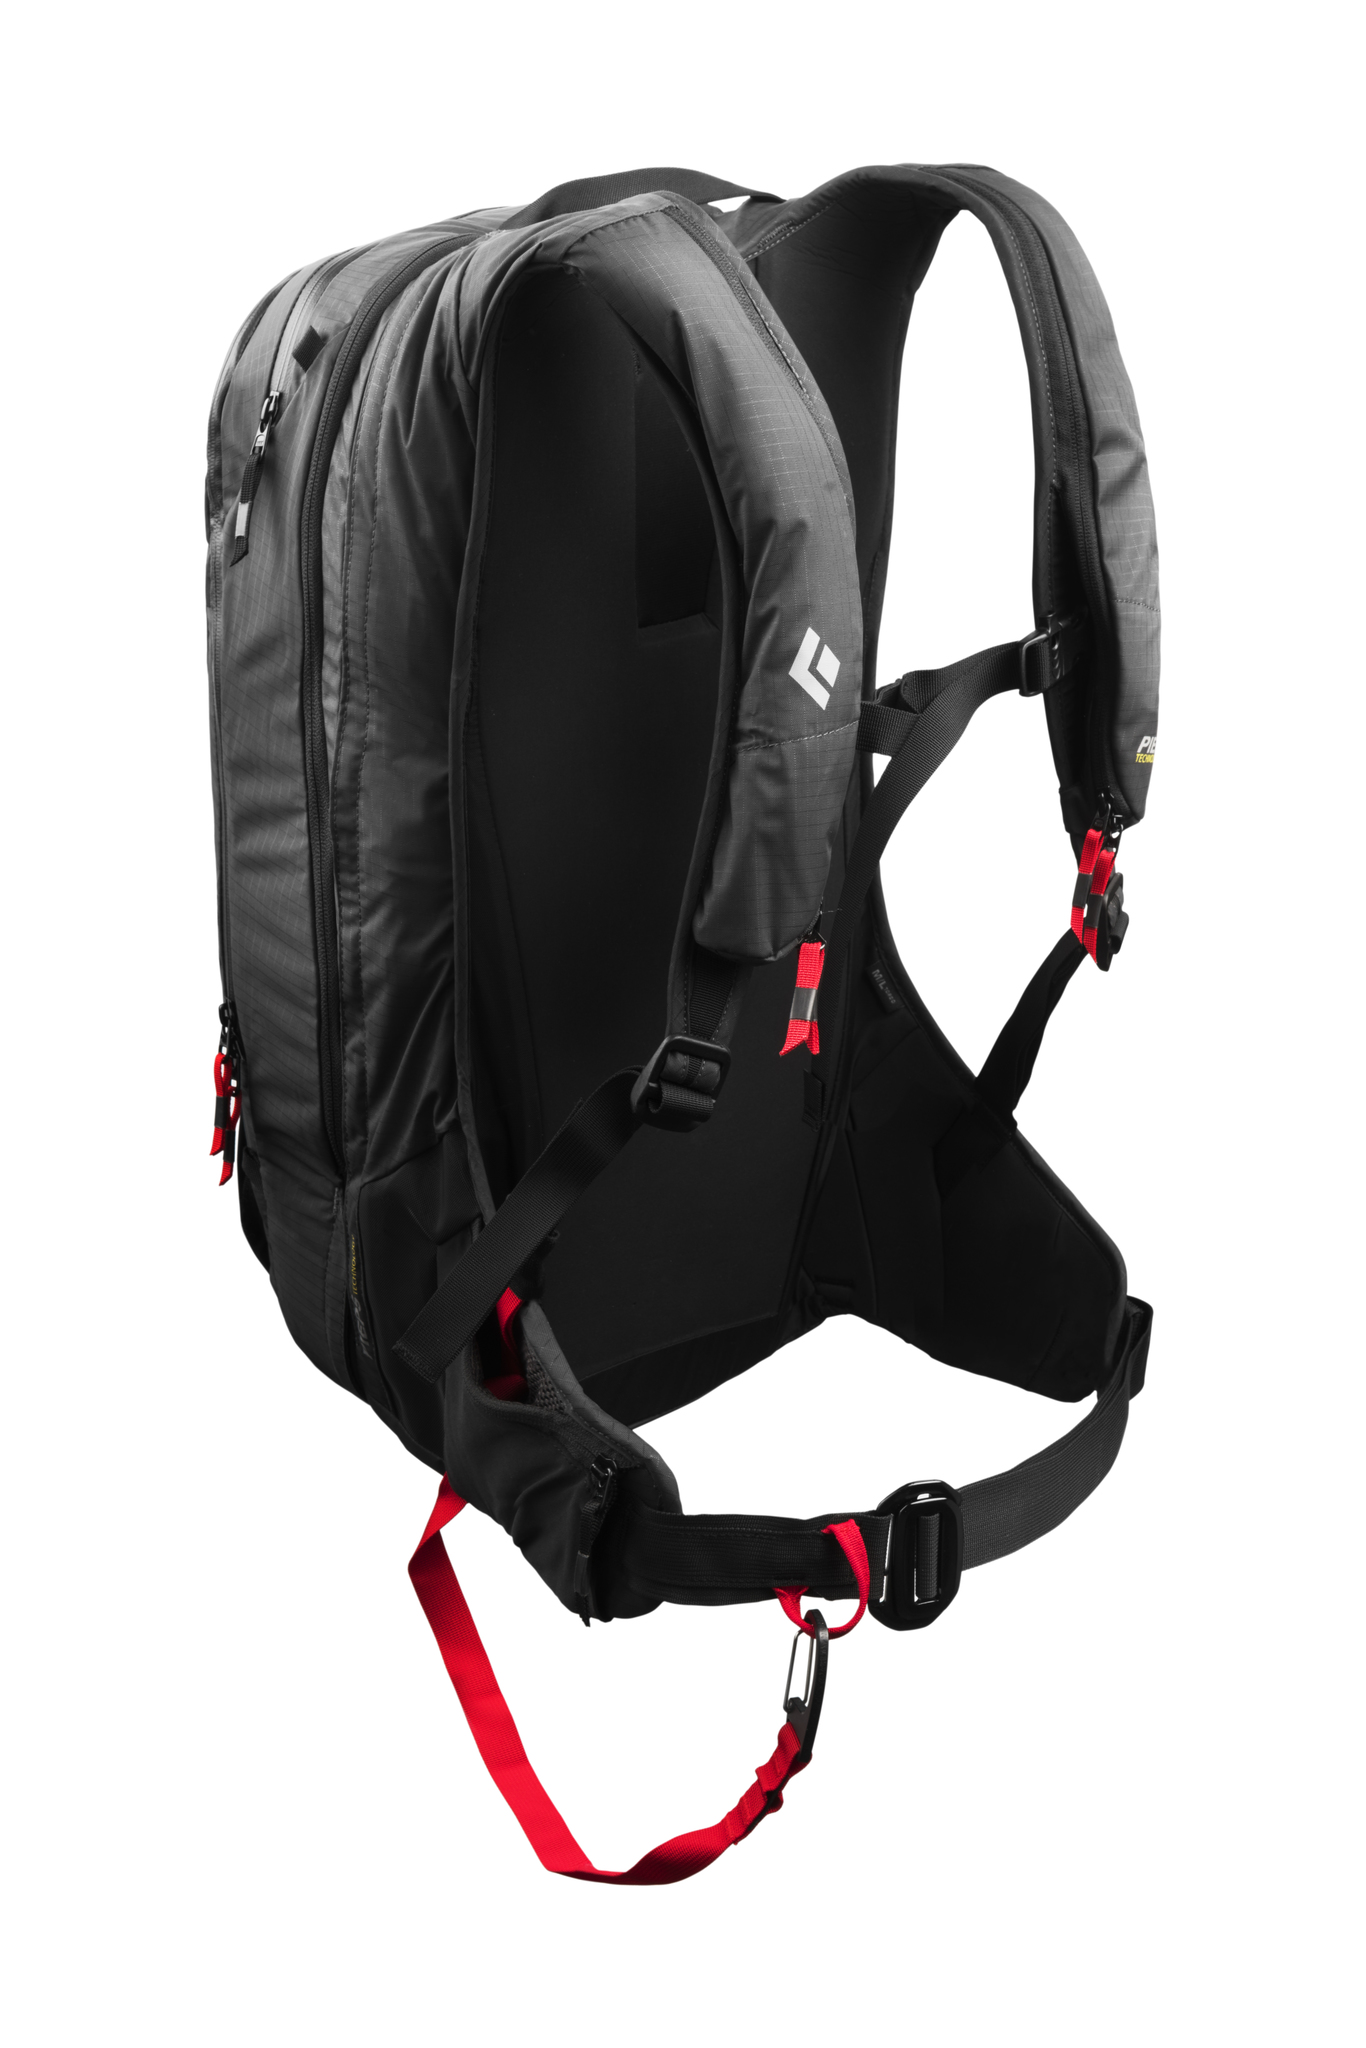 Black Diamond Jetforce Pro Avalanche Airbag First Look